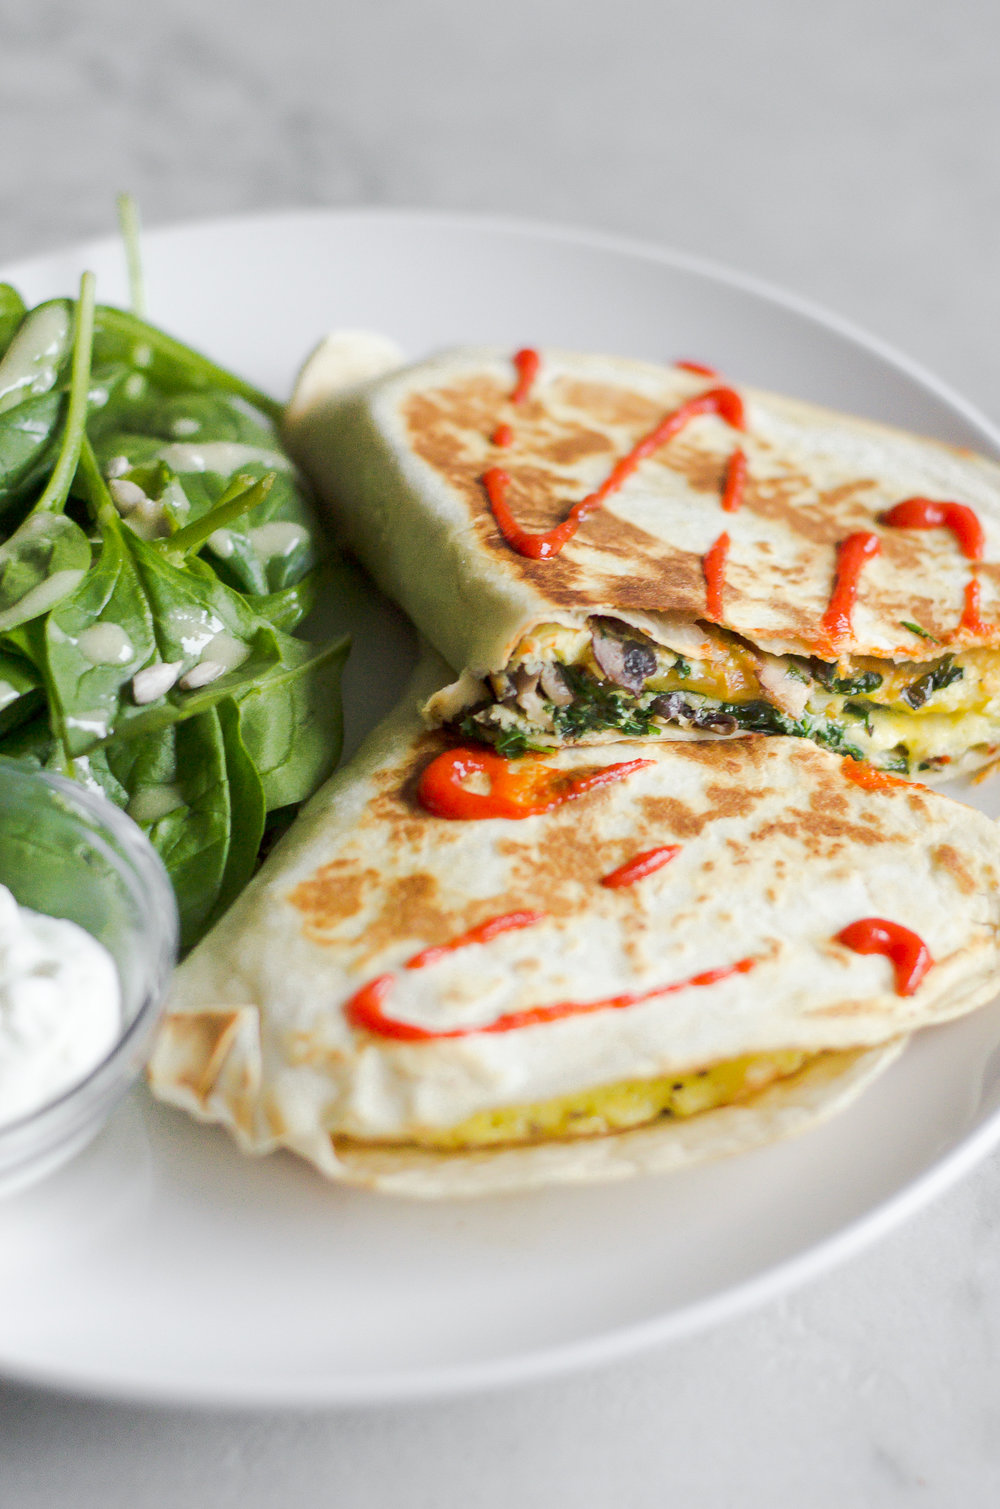 Quesadilla with spinach salad